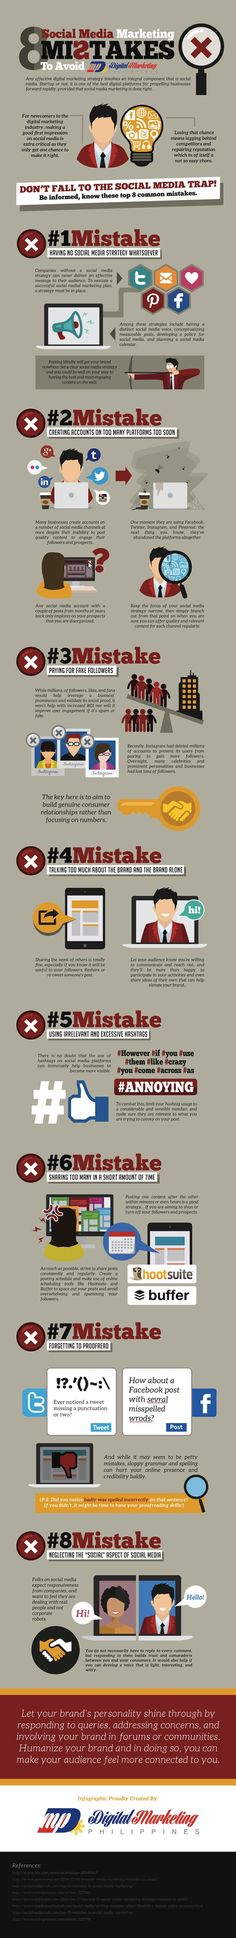 8 Social Media Marketing Mistakes to Avoid #infographic